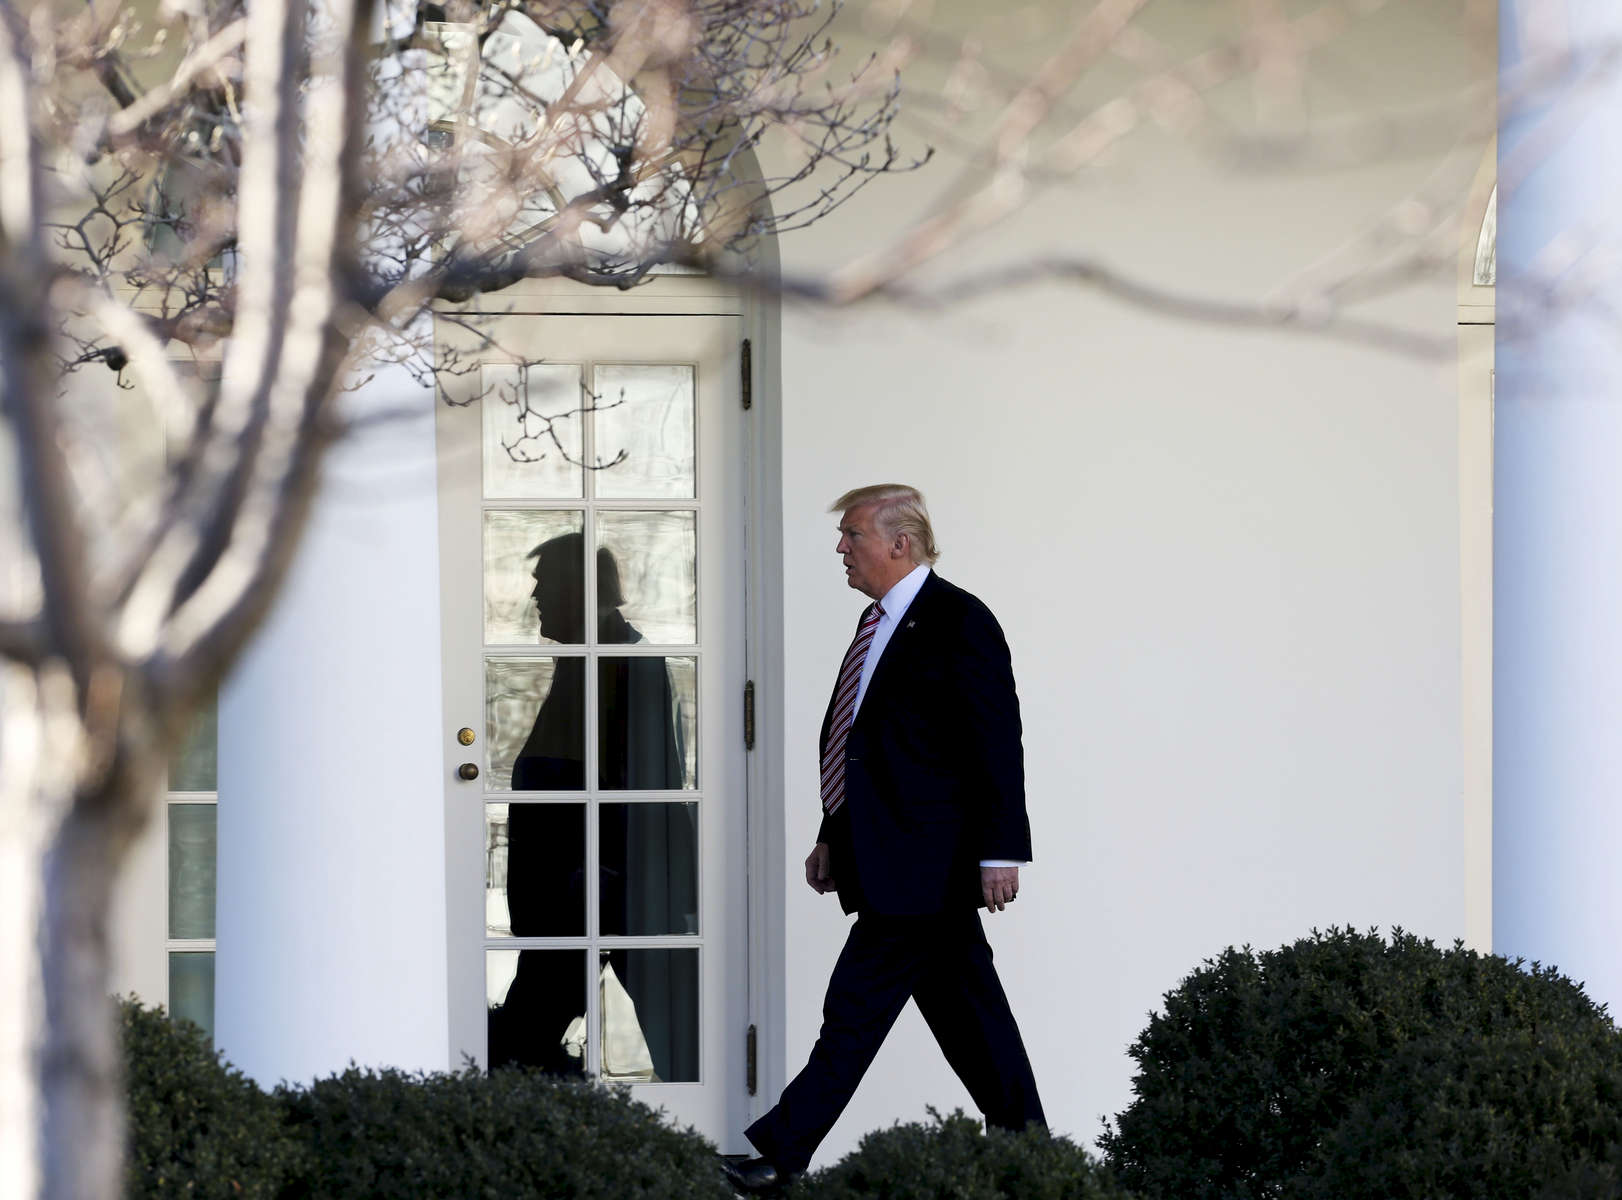 US President Donald Trump walks to the Ovale Office.